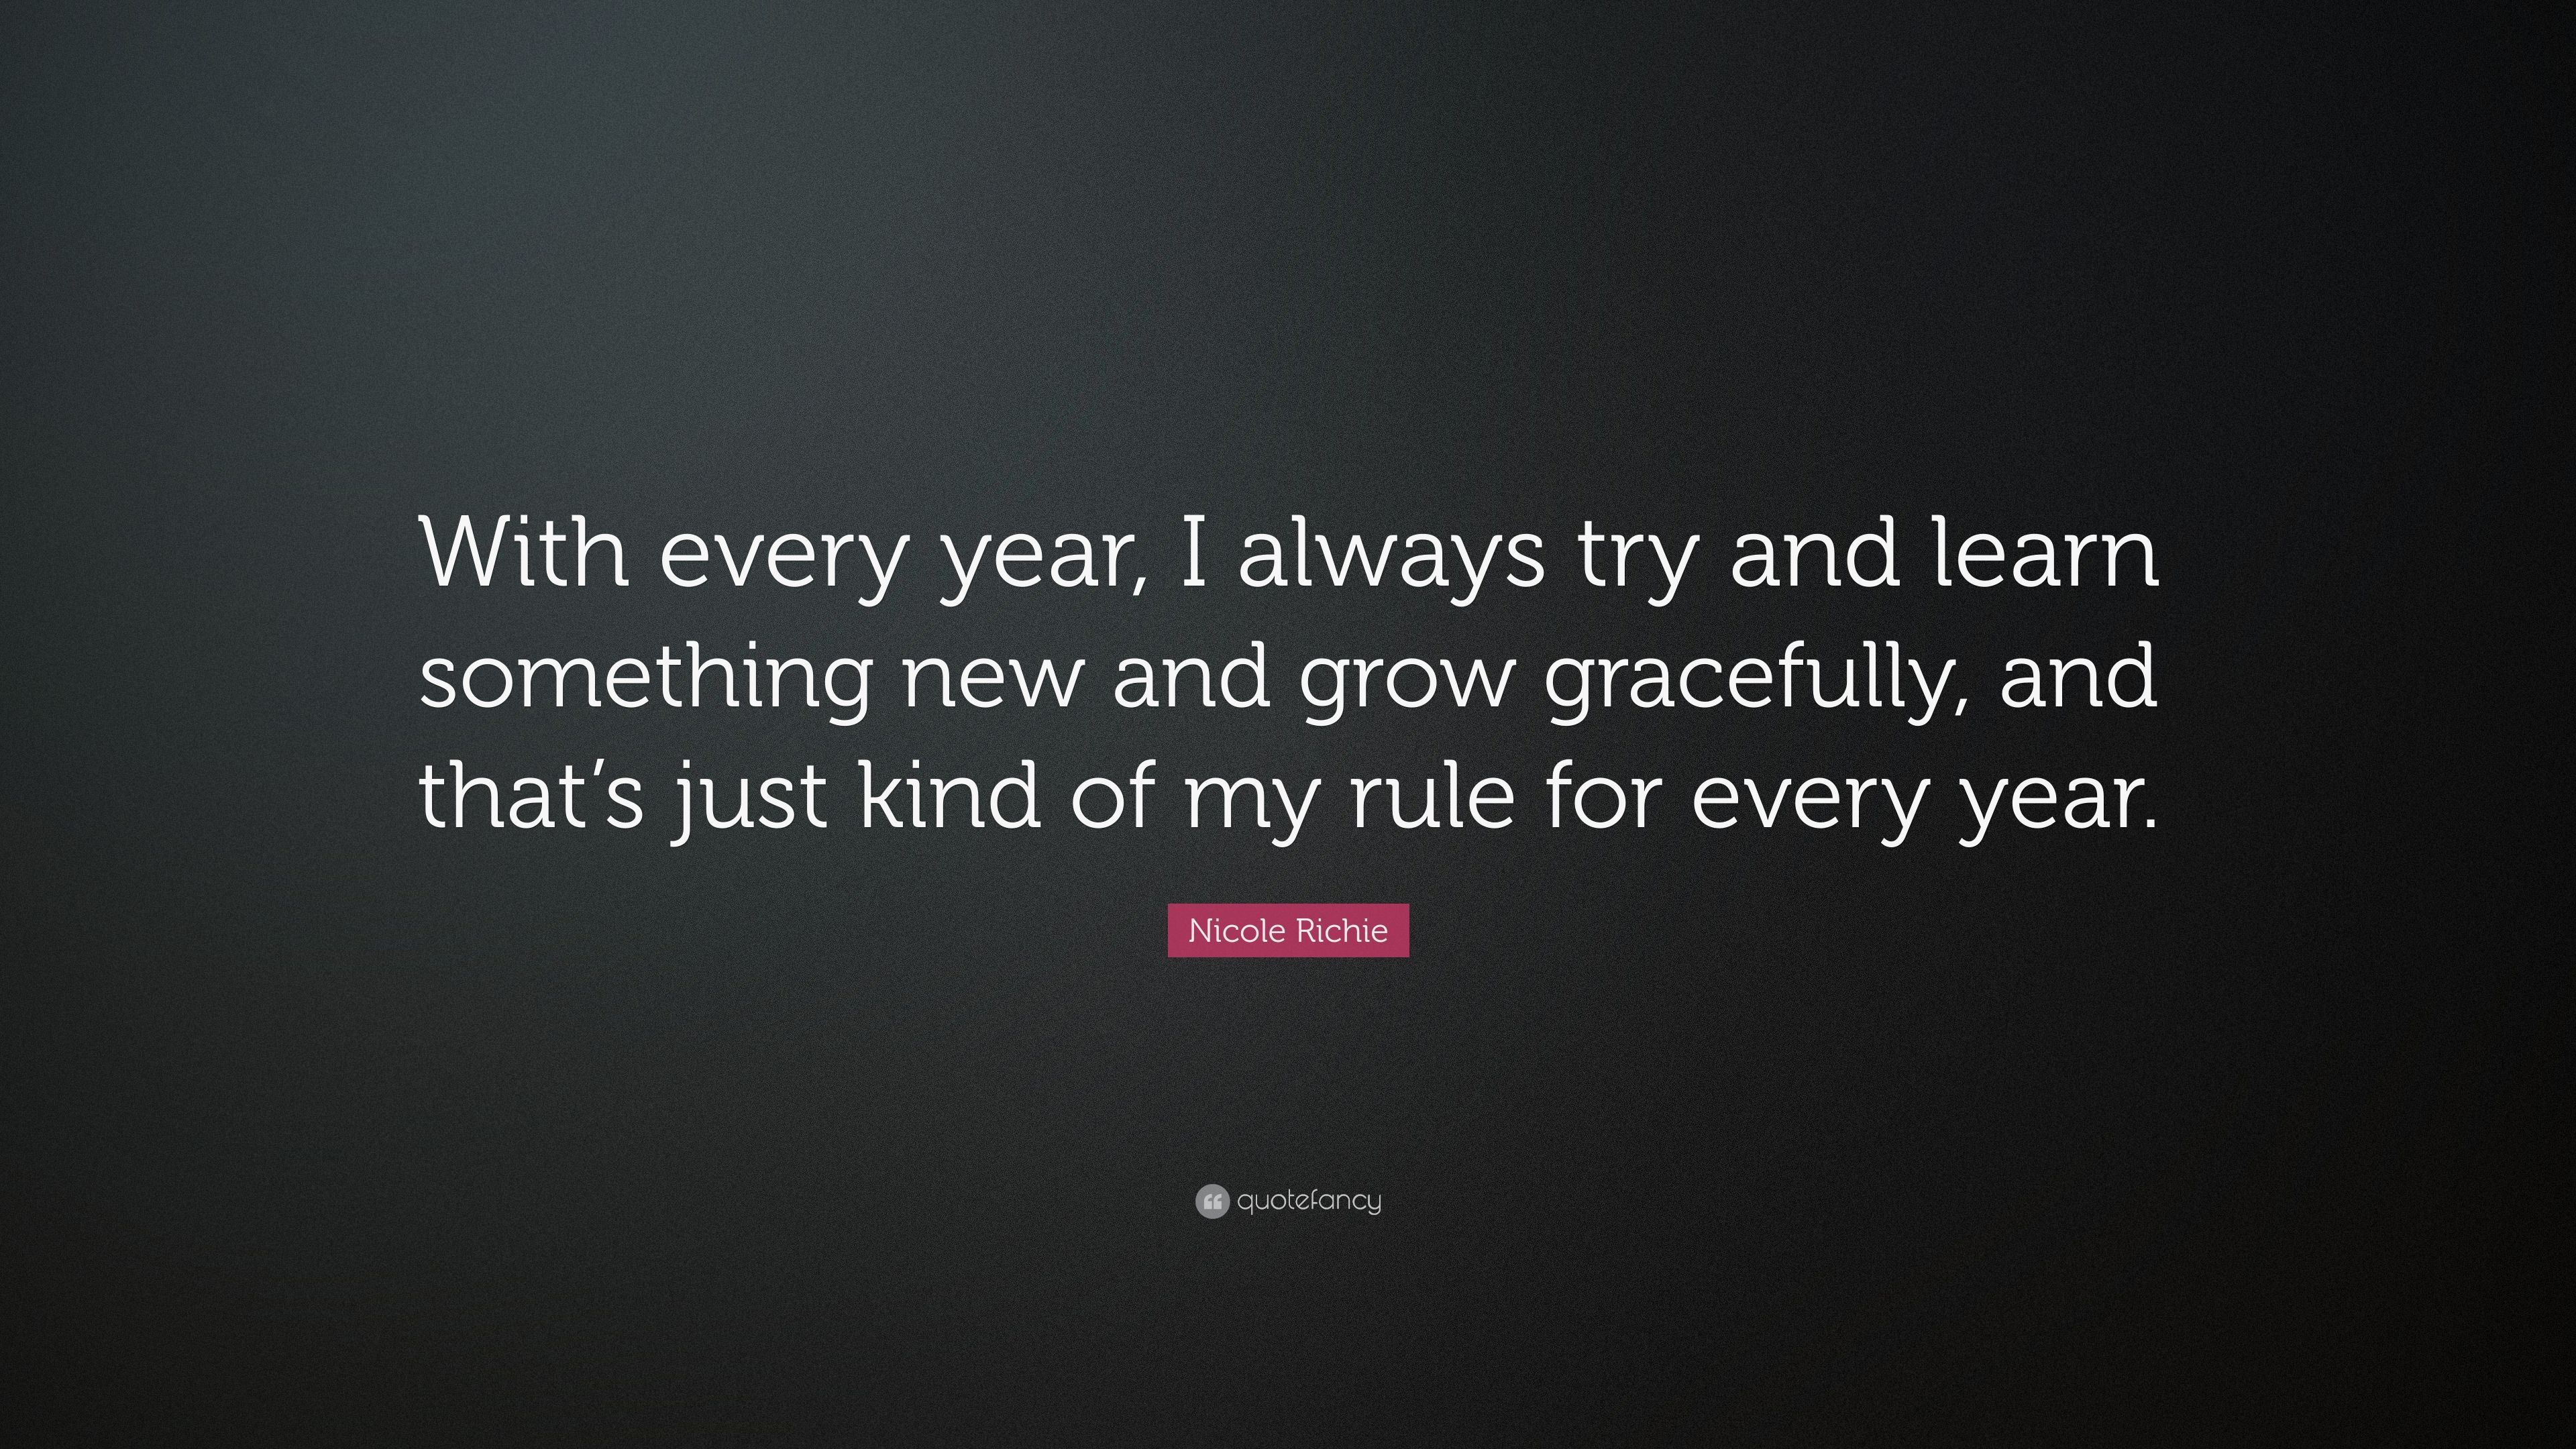 Amazing Simple Nicole Richie Quote Ucwith Every Year I Always Try And Learn  Something New With Fr Groe Rume With Groe